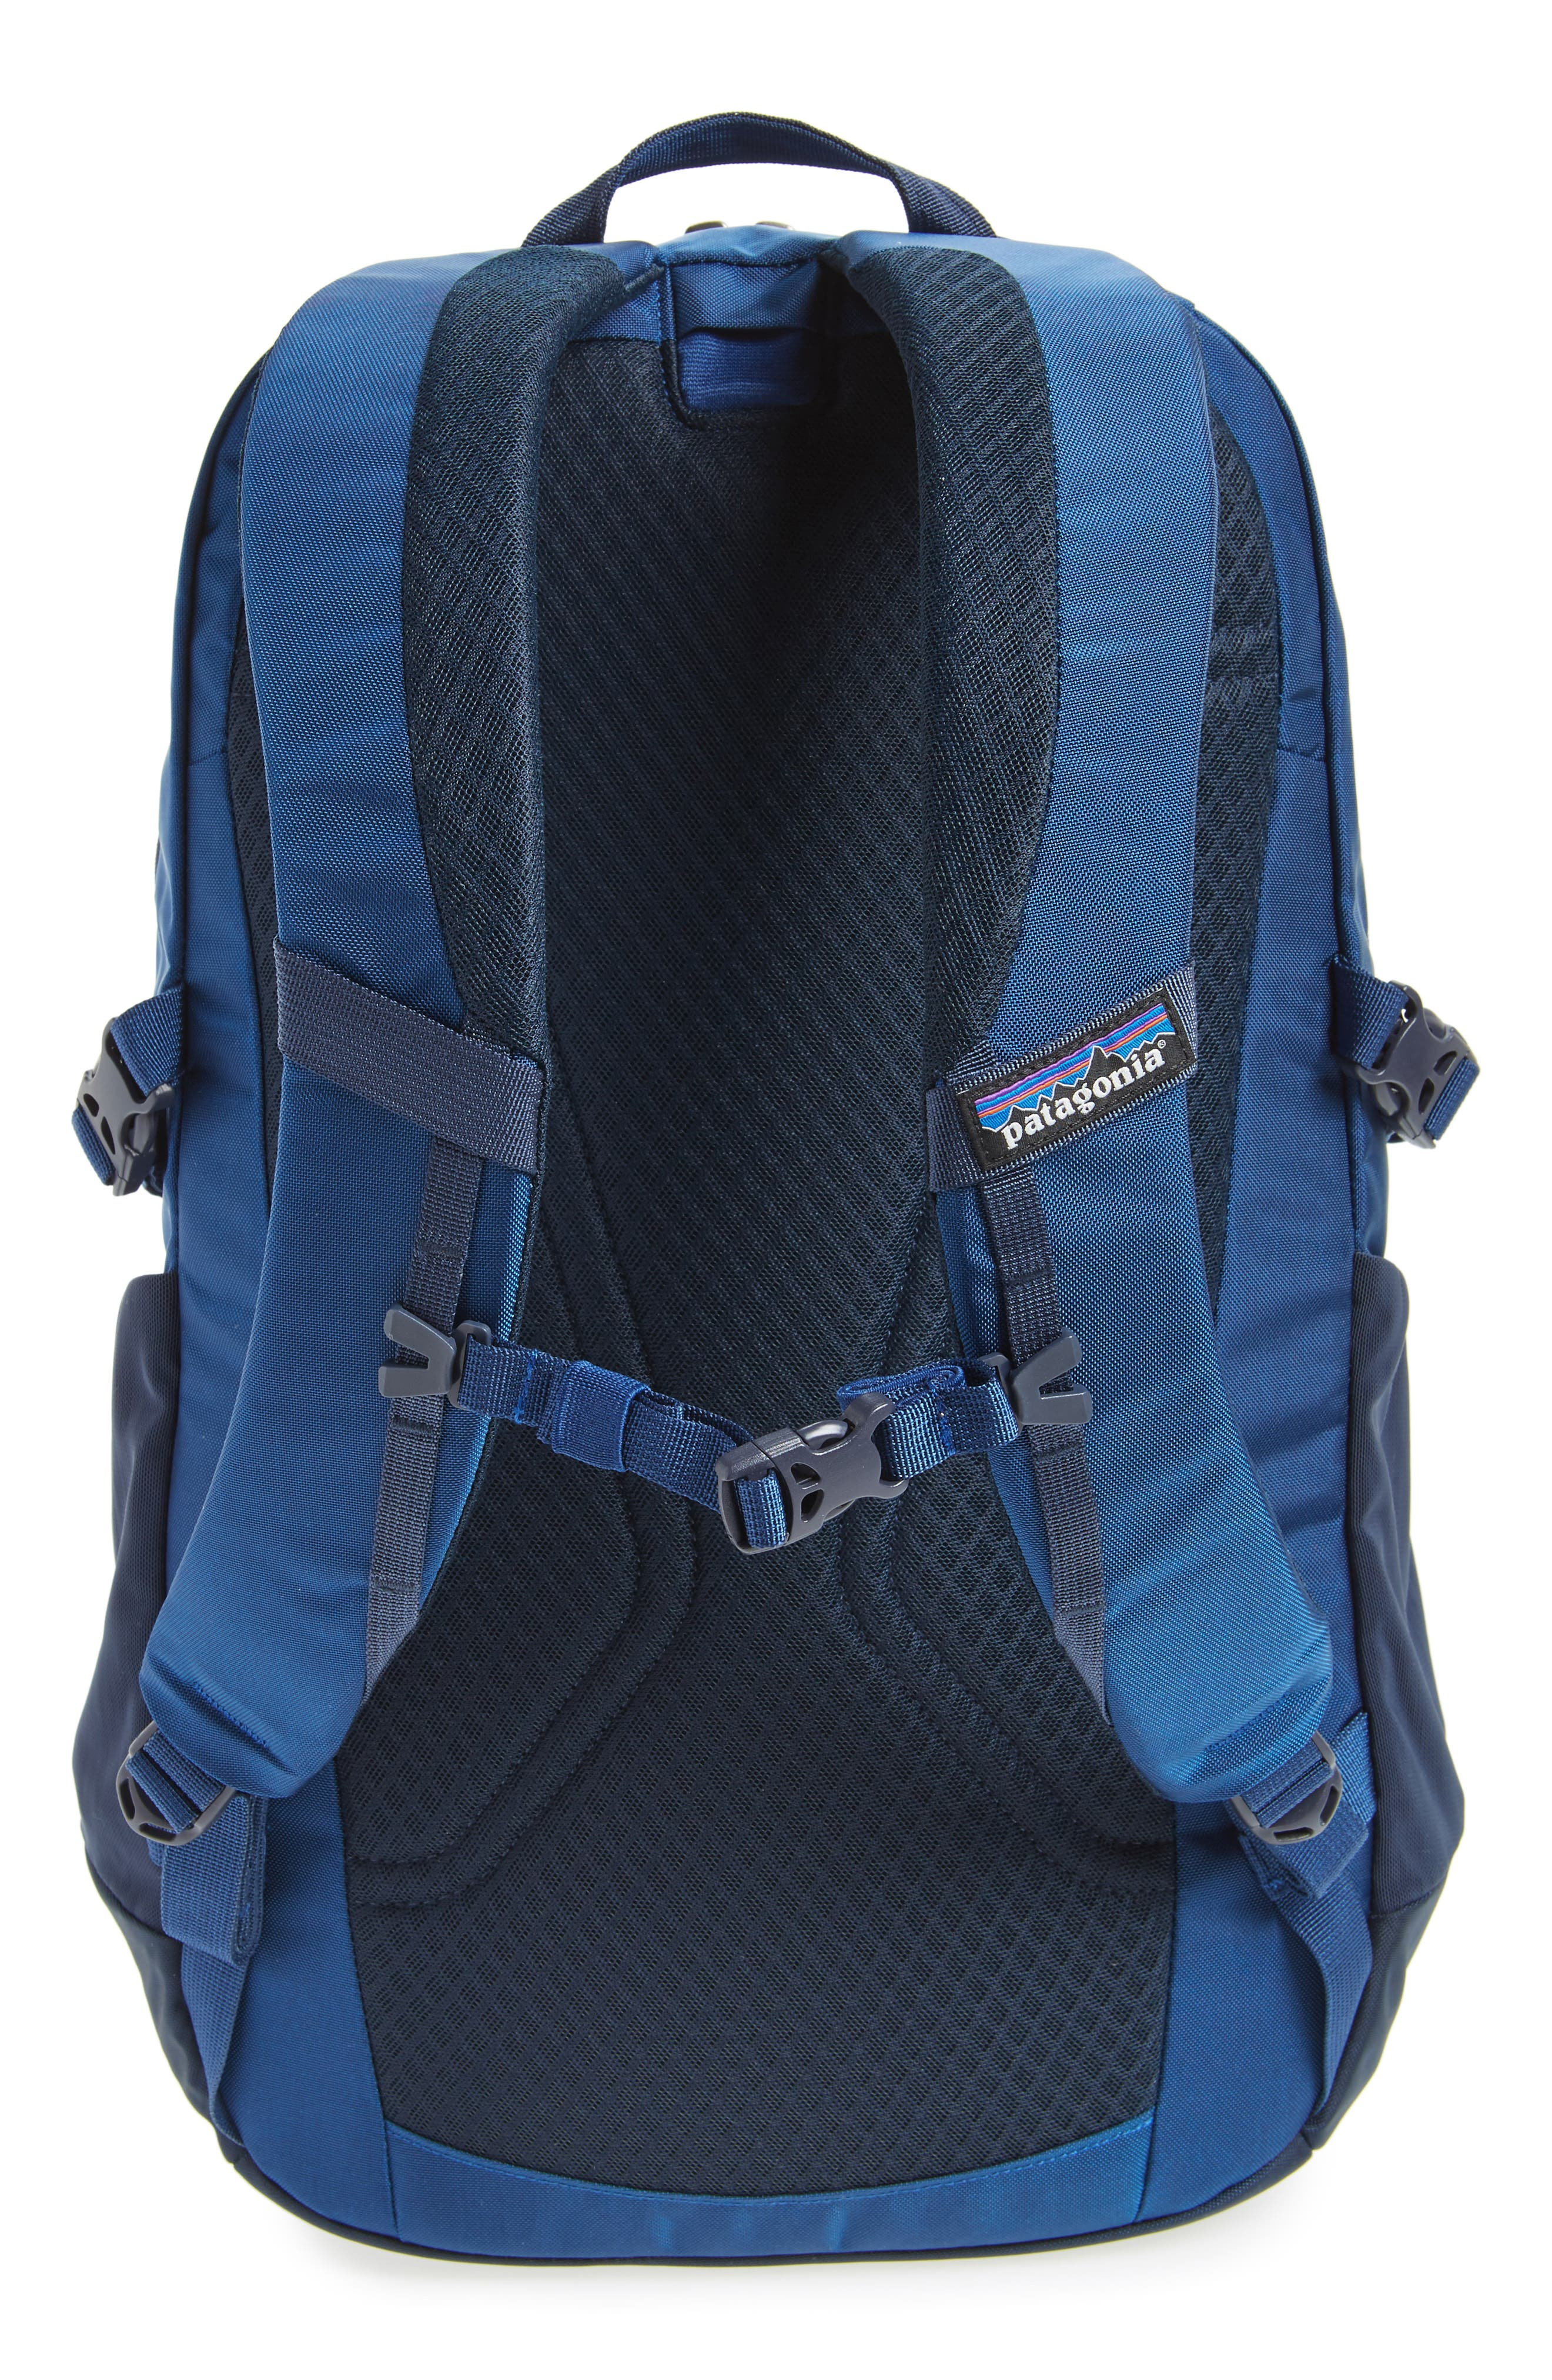 28L Refugio Backpack,                             Alternate thumbnail 3, color,                             Navy Blue